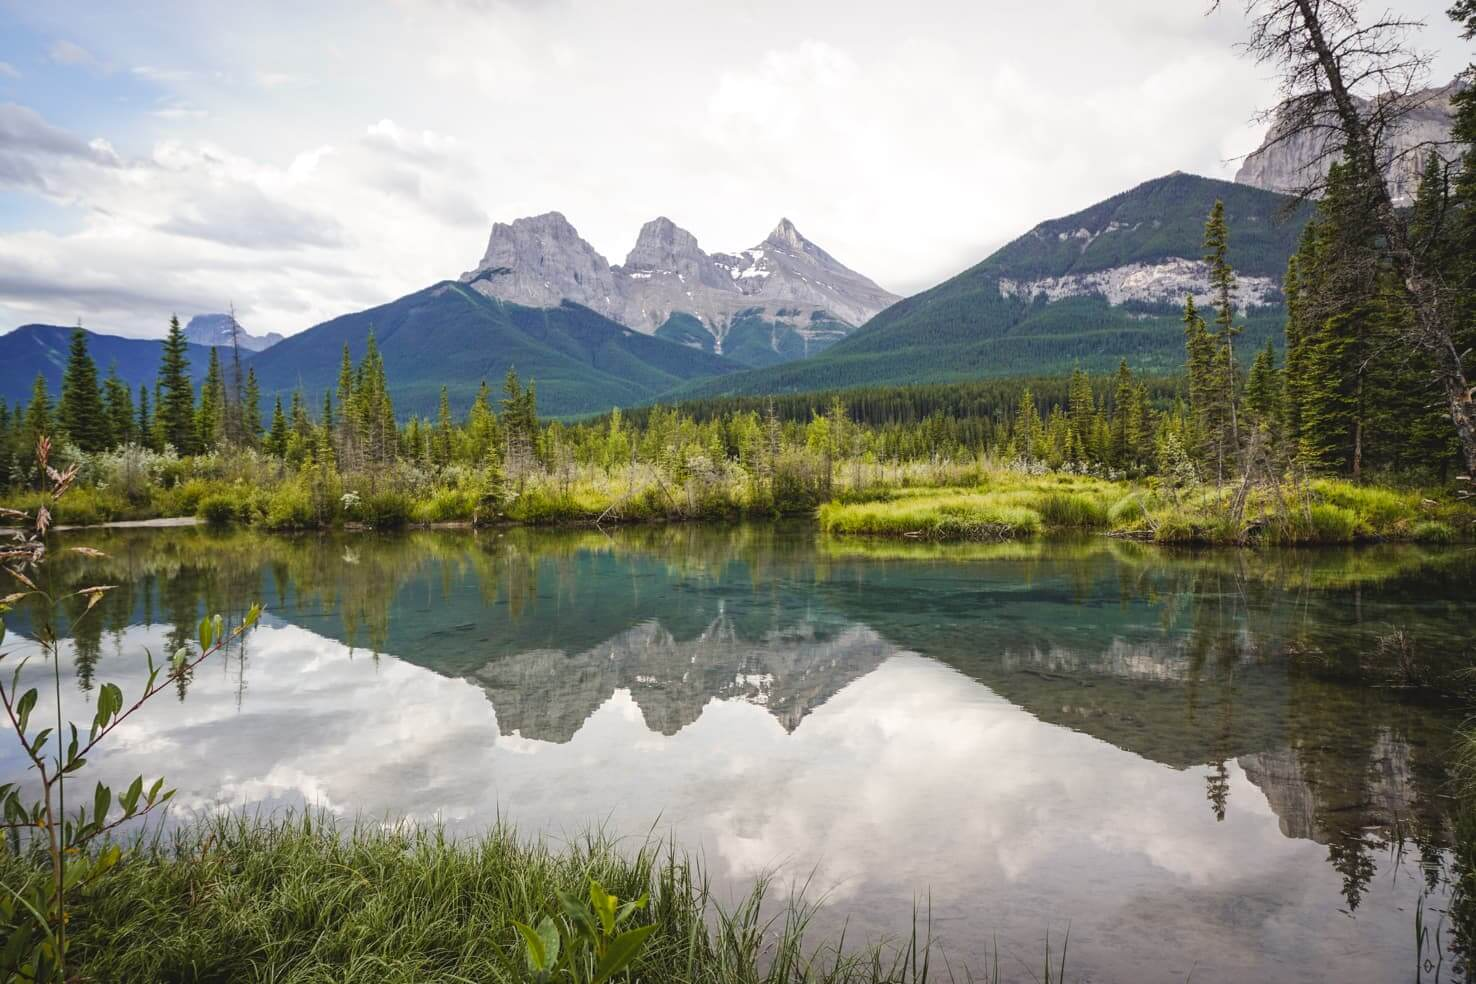 20 things to do in Canmore - photograph the iconic peaks of Three Sisters